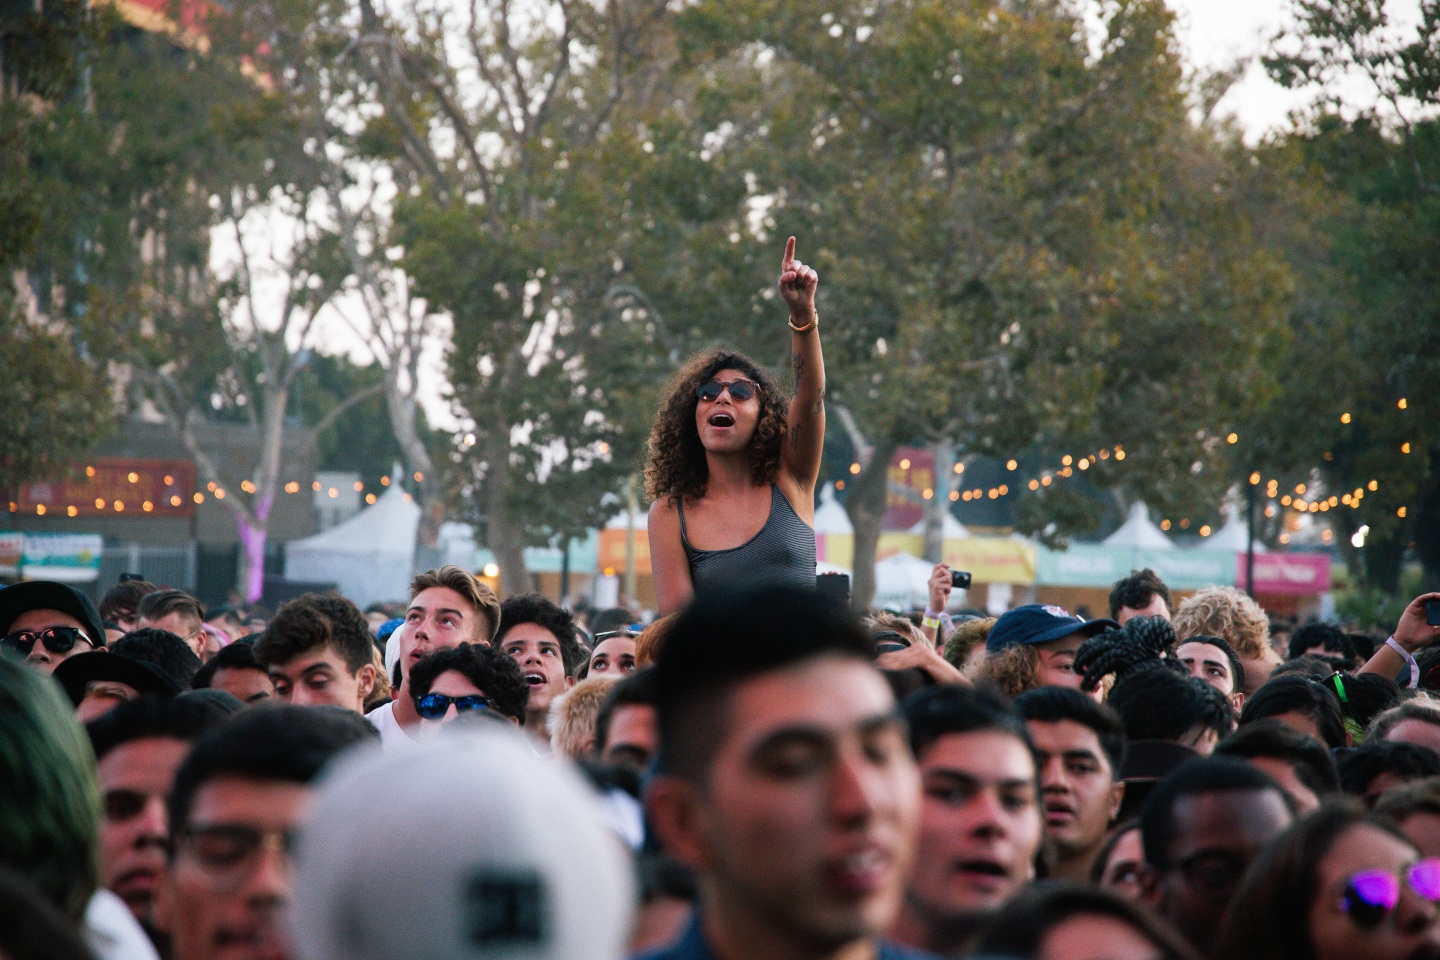 The Beautiful People of FYF Fest